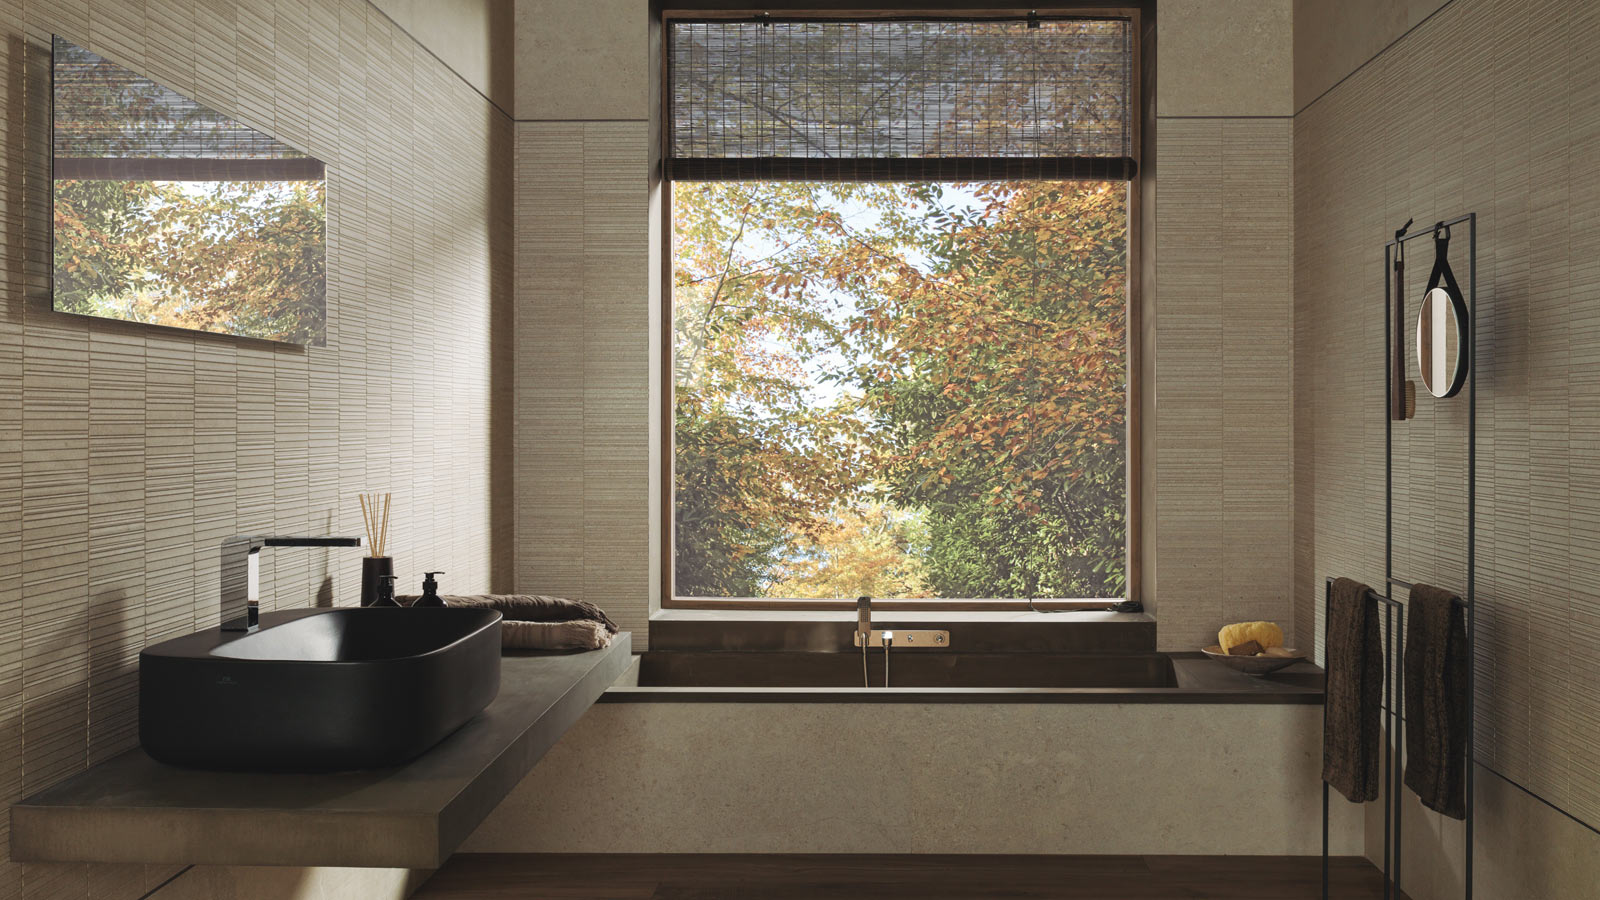 The wall tiles from Porcelanosa are being modernised through the XL Lineas decors